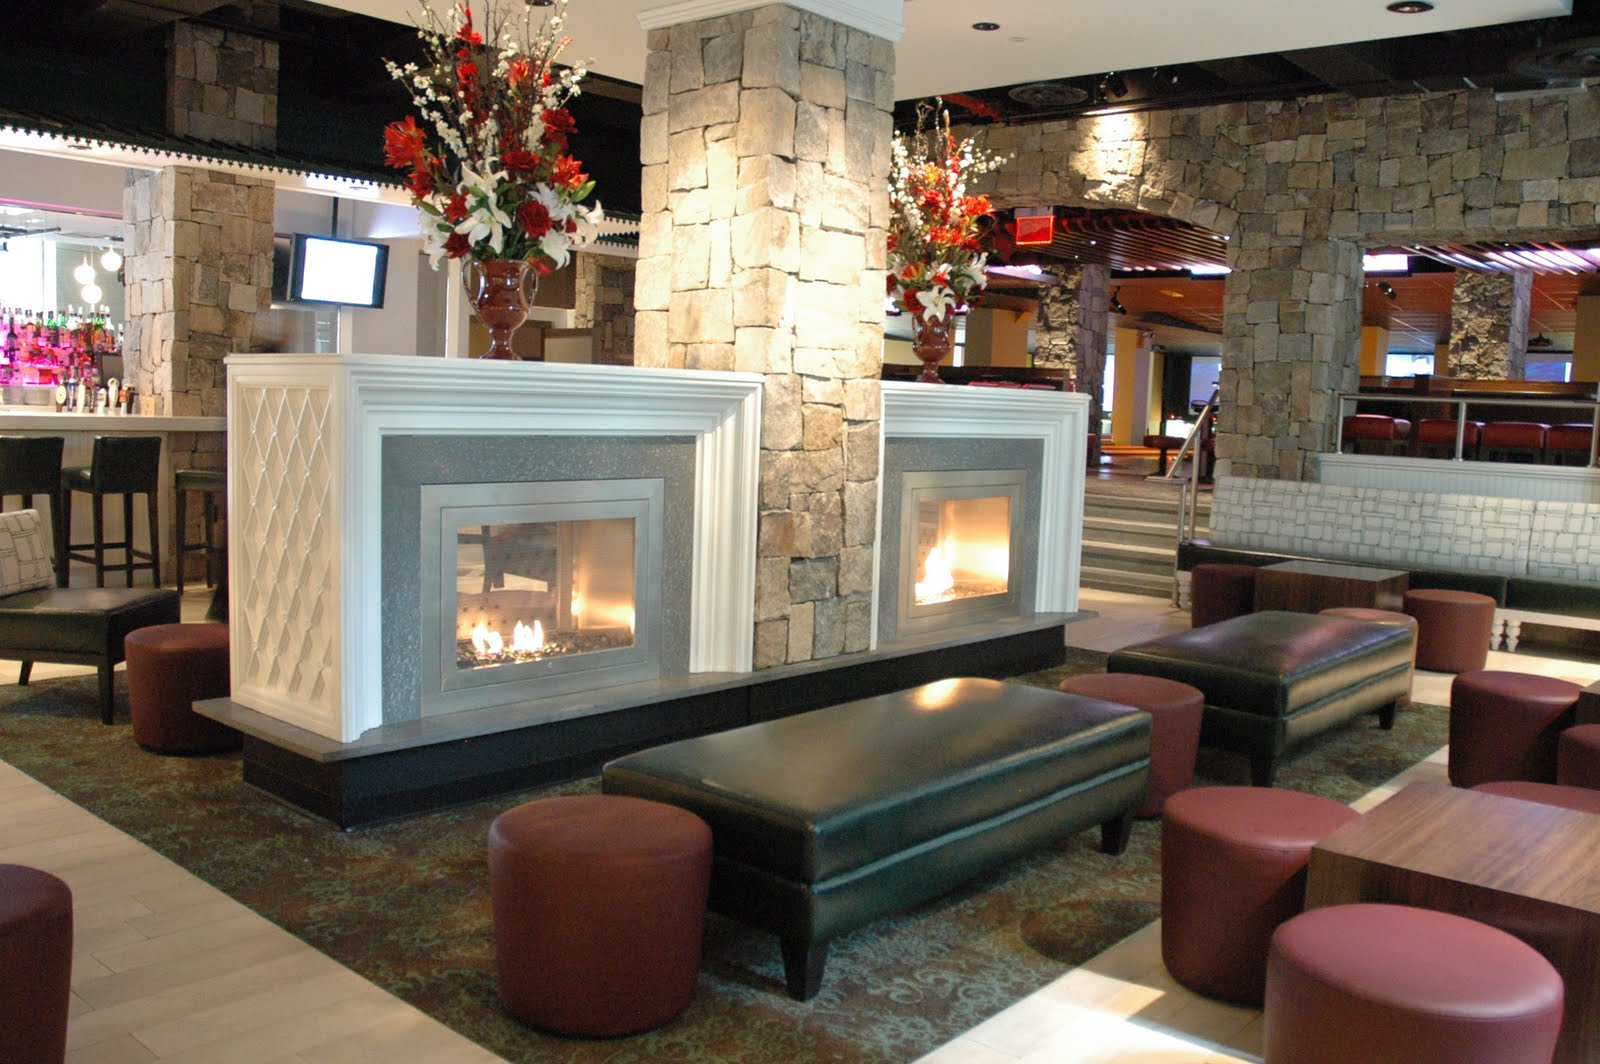 Best fireplace design ideas ventless gel fuel fireplaces for Luxury fireplace designs